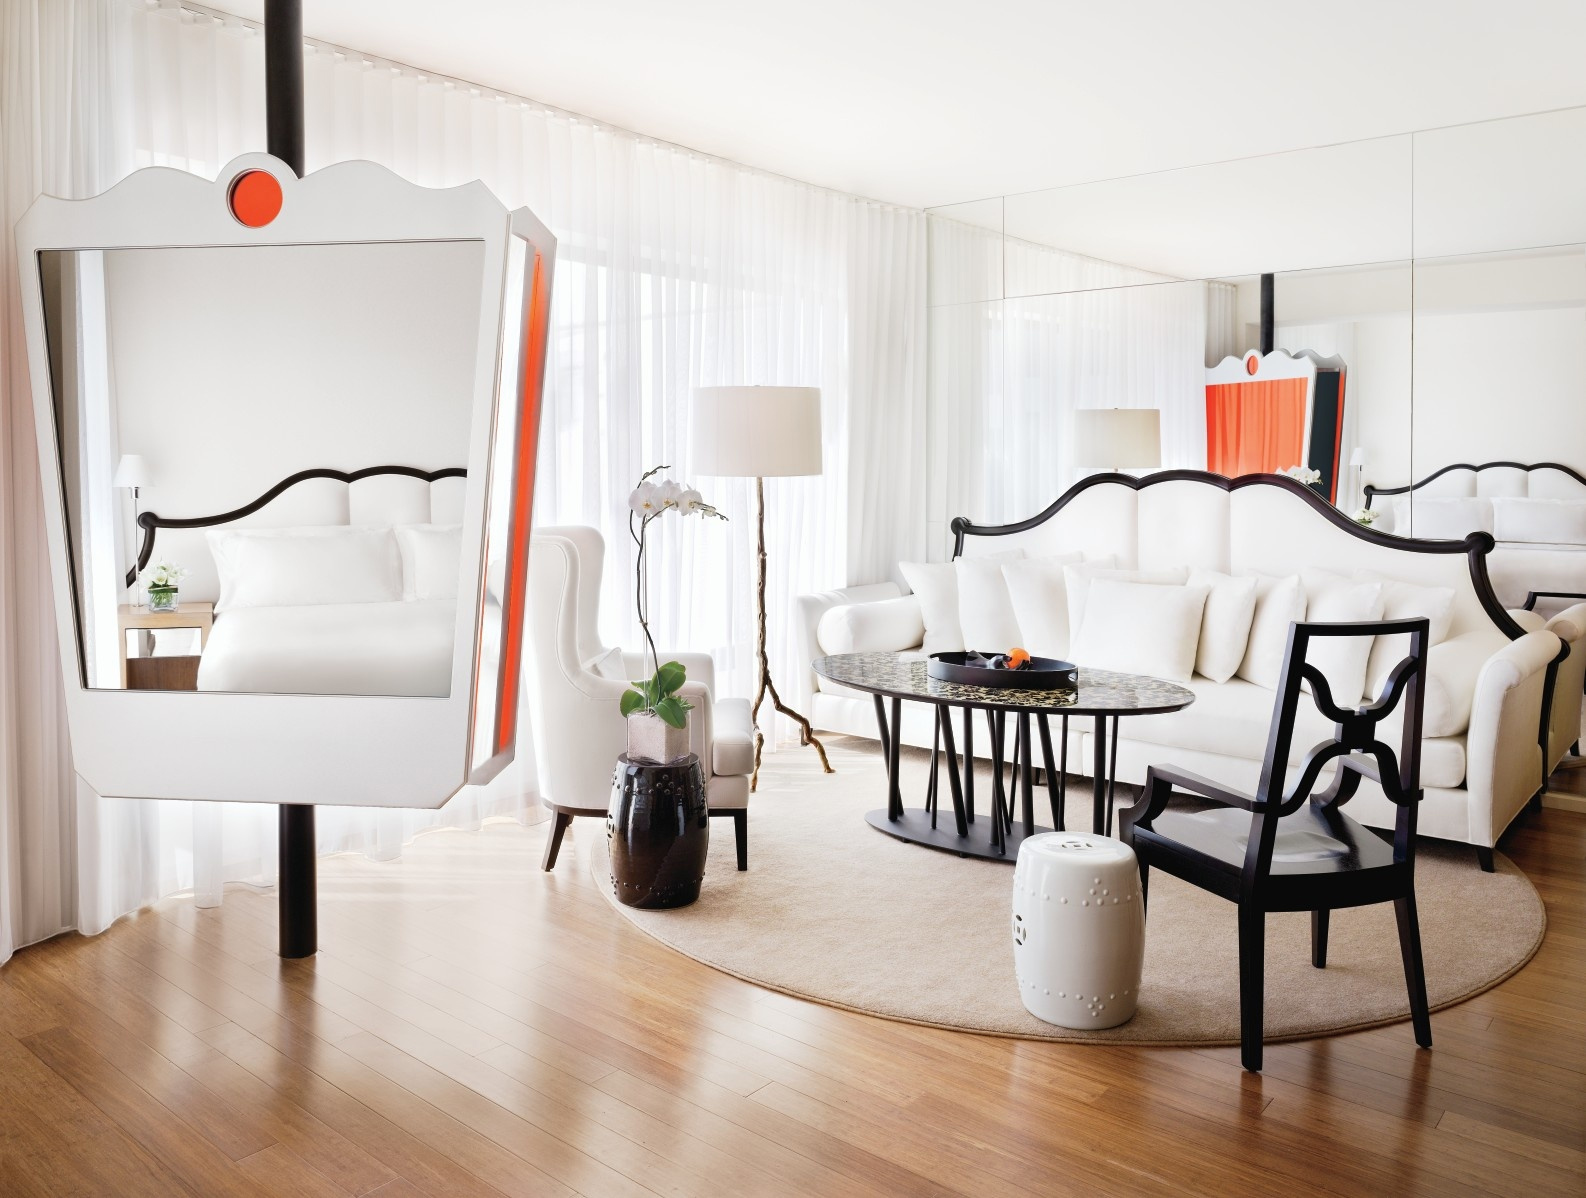 Mondrian by sbe hospitality net for Design hotels la